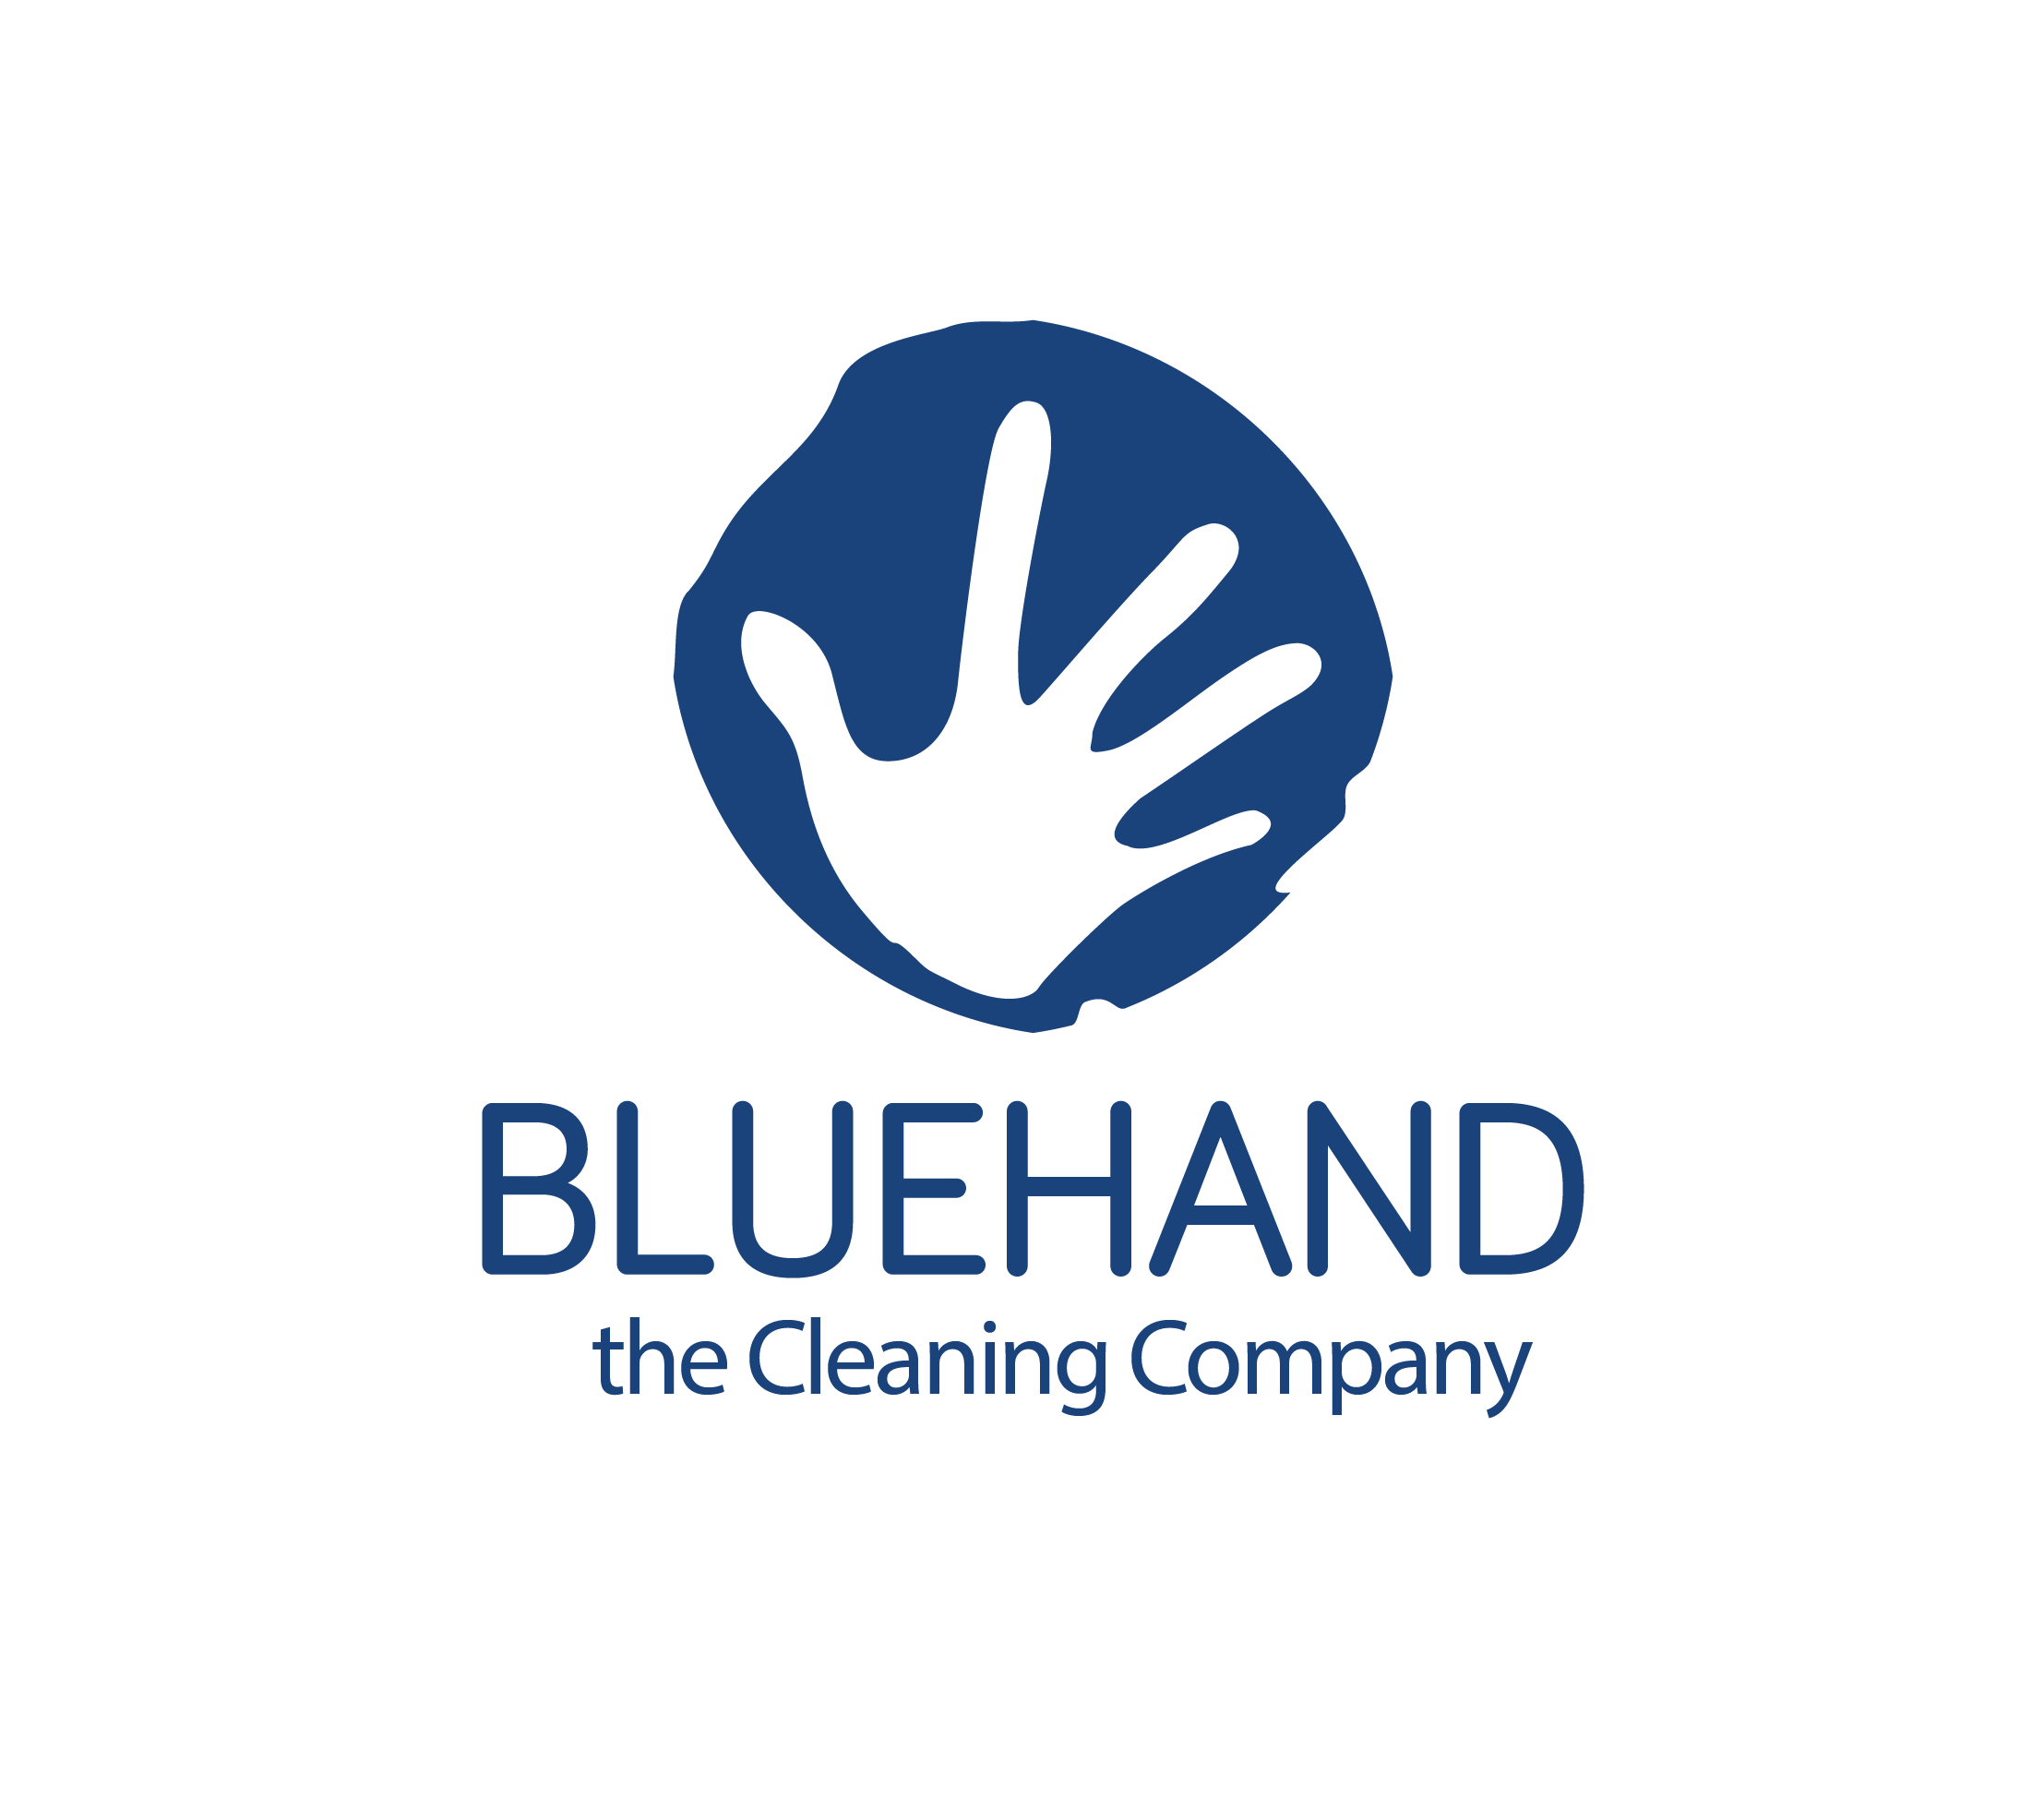 BLUEHAND The Cleaning Company